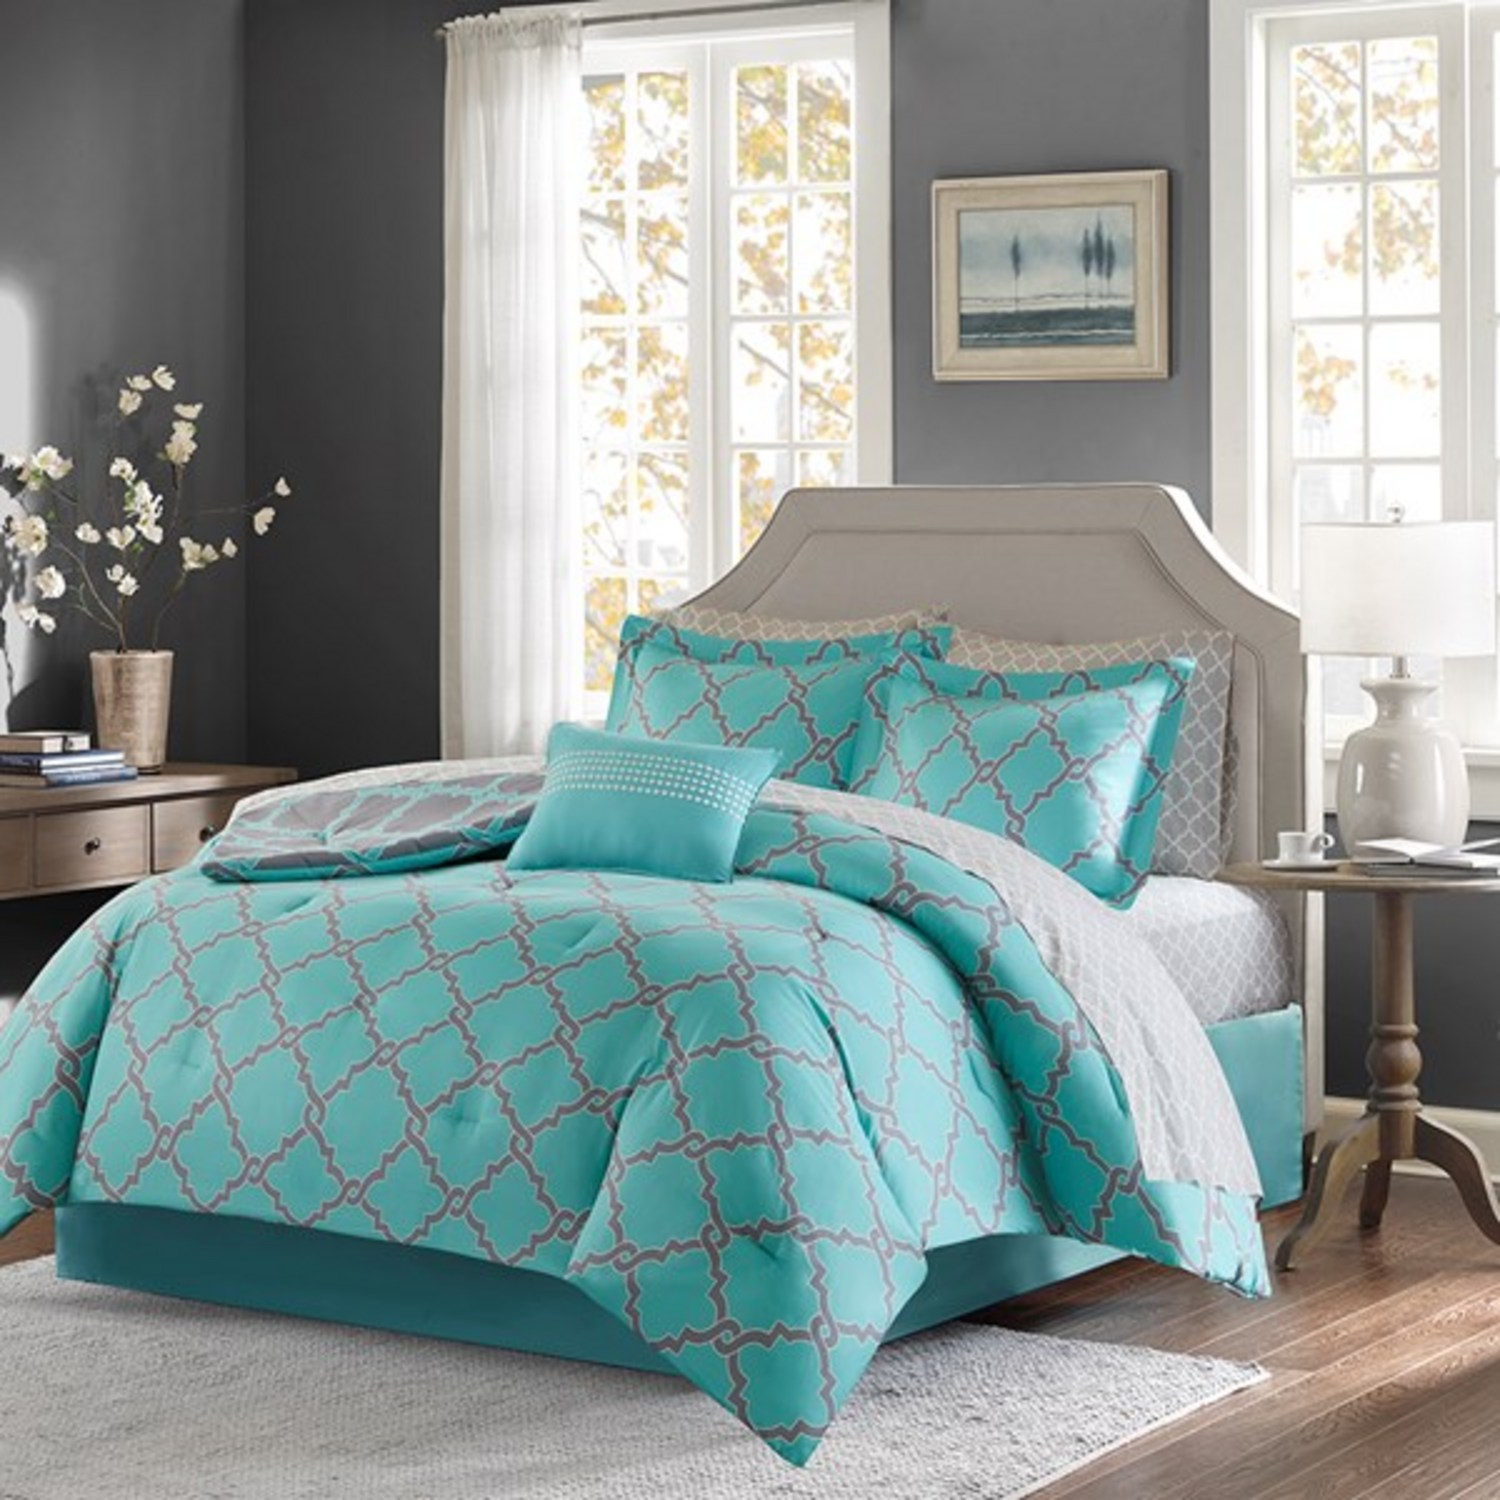 Merritt Aqua Grey By Madison Park Beddingsuperstore Com